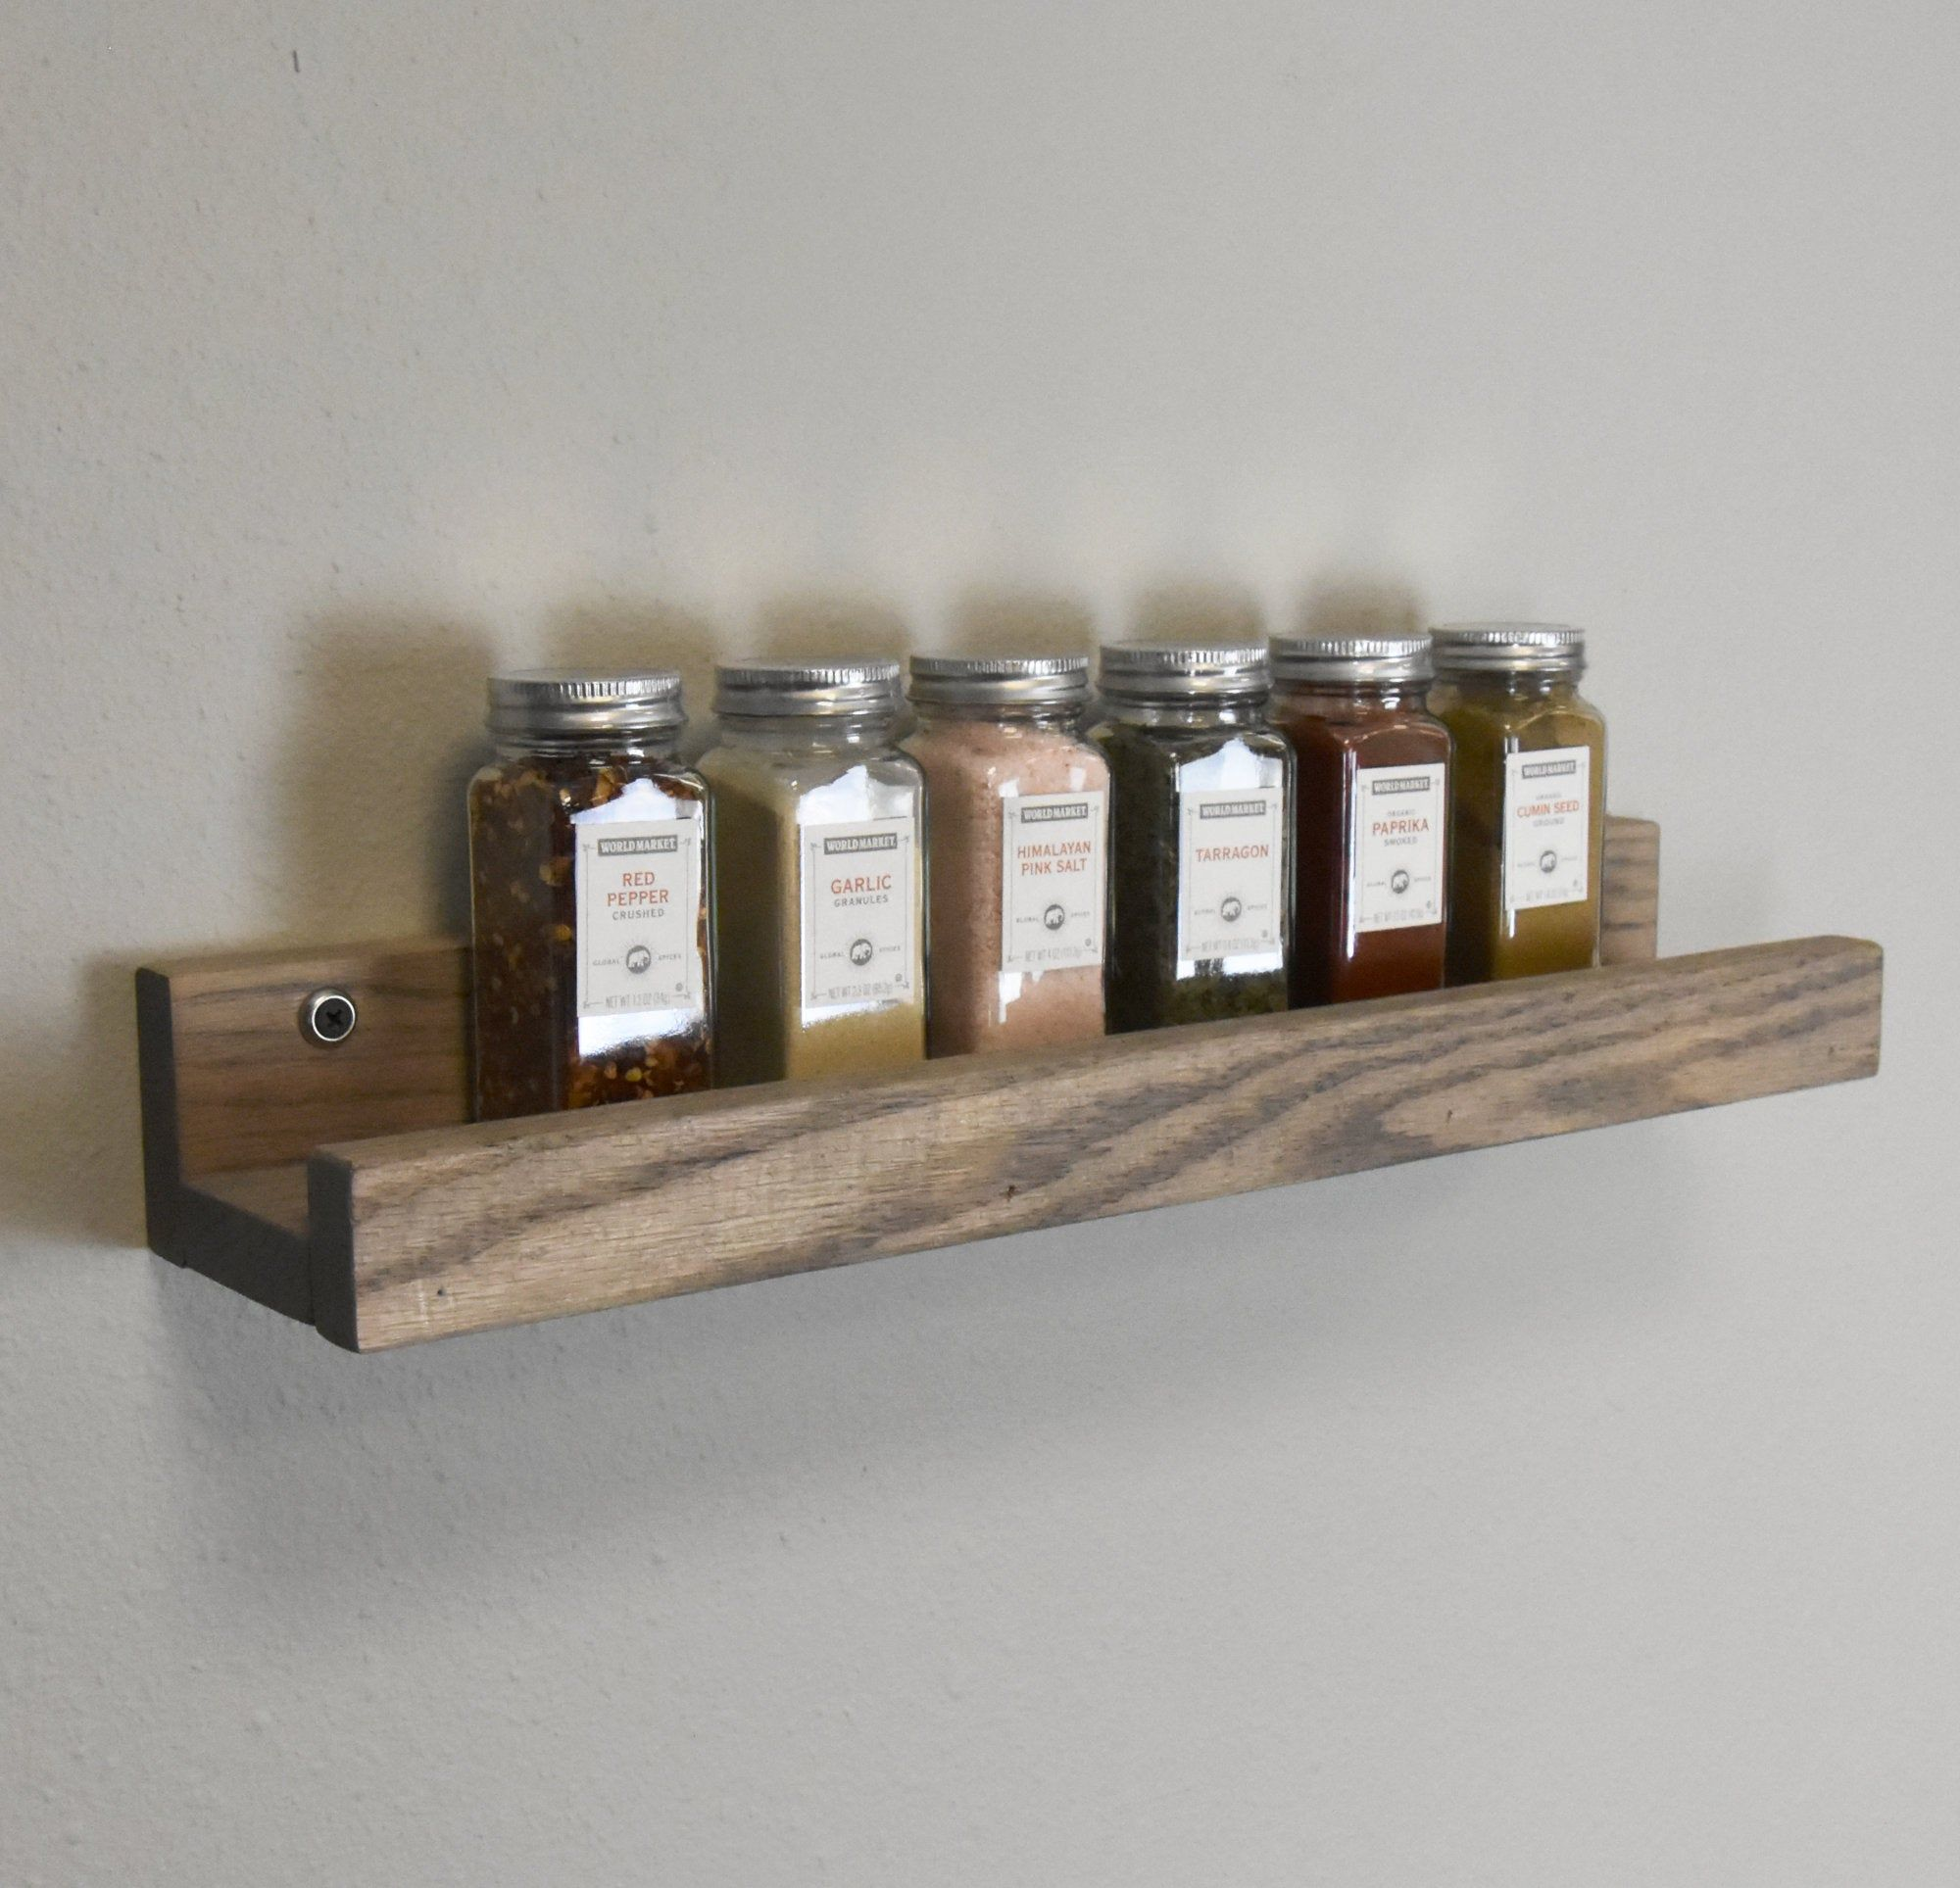 Solid Oak Spice Rack Gray Wash Stained Spice Organizer Picture Ledge Kitchen Spice Tray Wall Mounted Kitc Kitchen Spice Racks Spice Tray Spice Organization